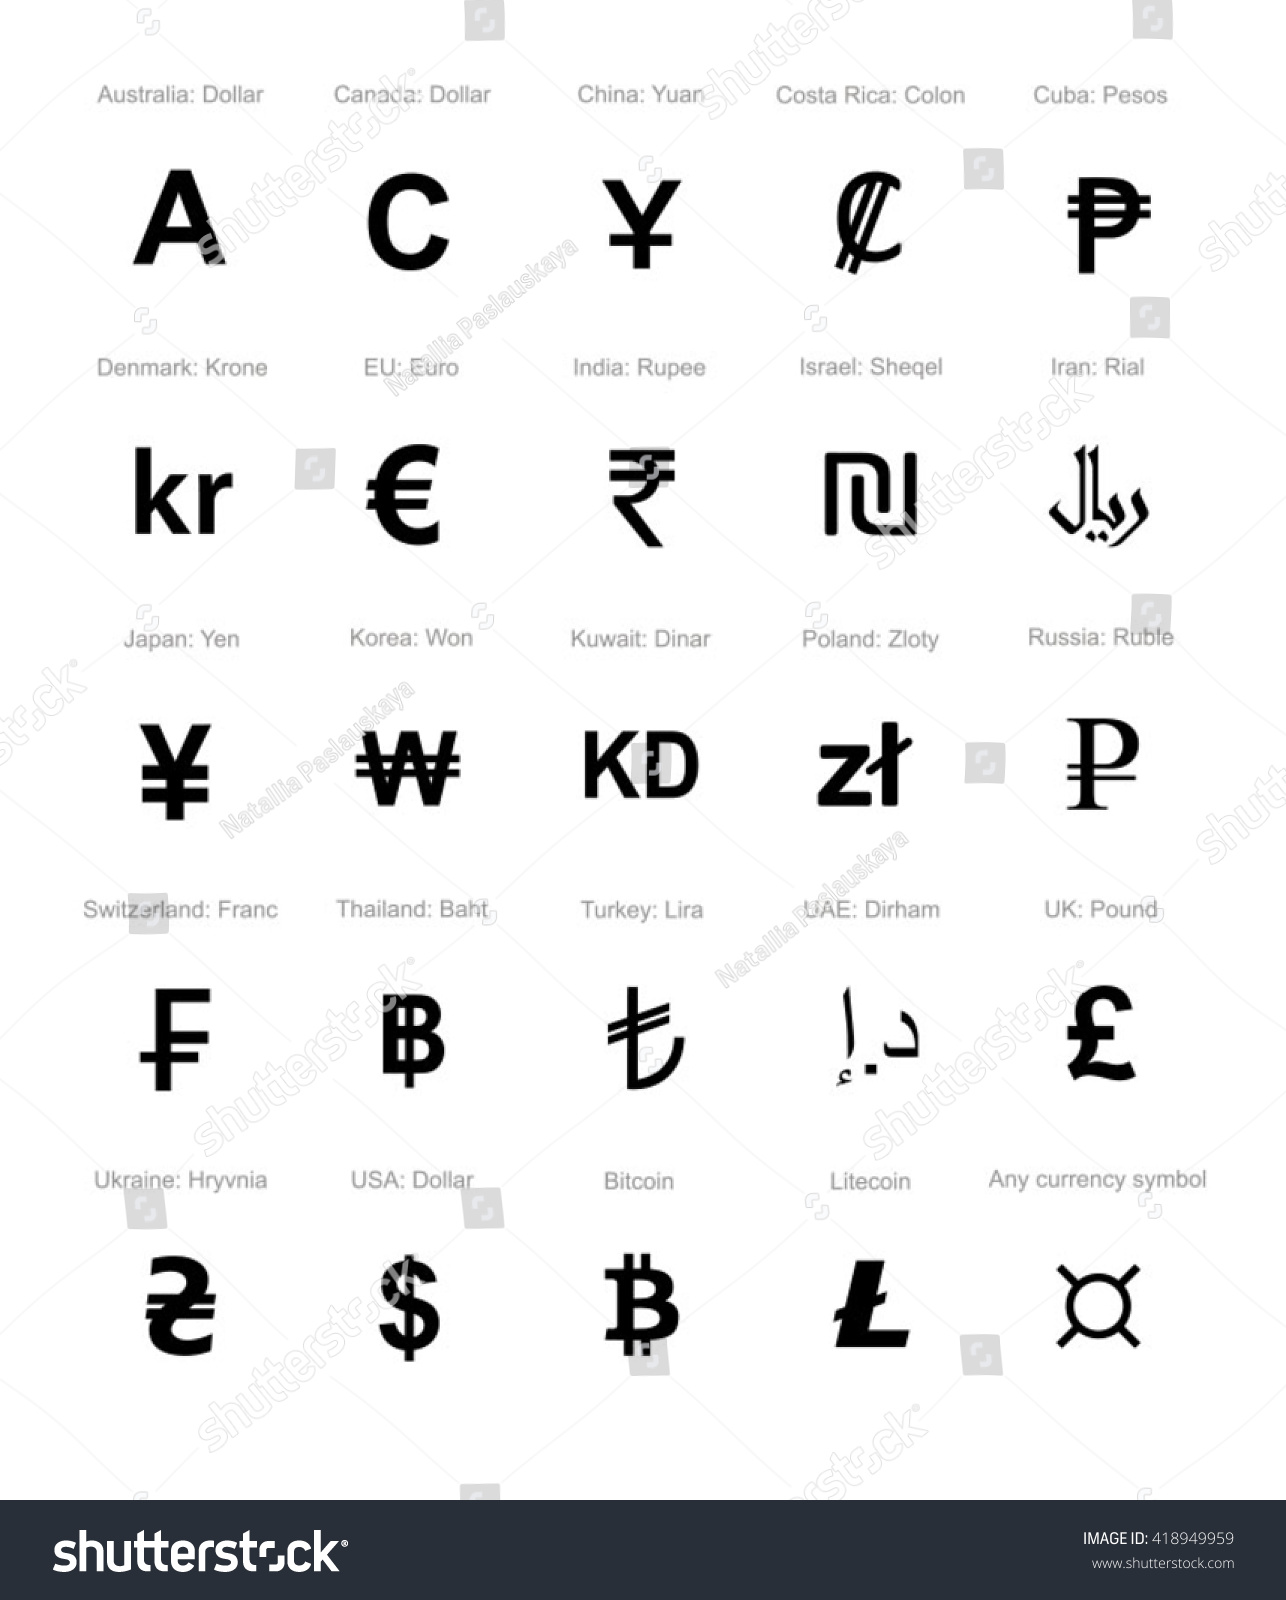 Currency Symbol Set Stock Vector Royalty Free 418949959 Shutterstock